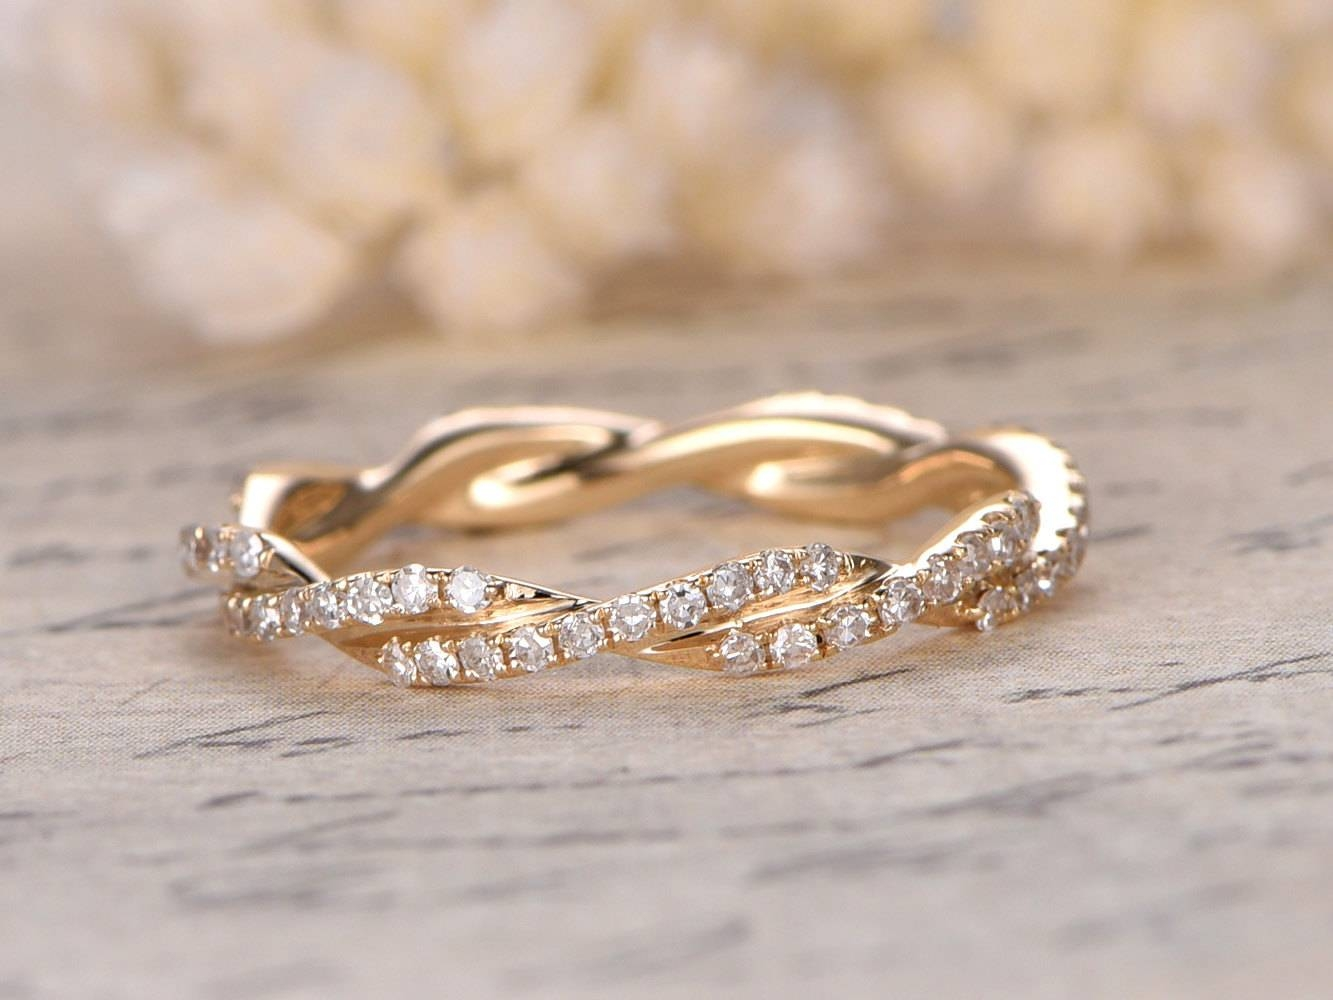 Diamond Wedding Bandfull Eternity Anniversary Ring 14k Inside Most Recently Released Eternity Anniversary Rings (Gallery 14 of 25)